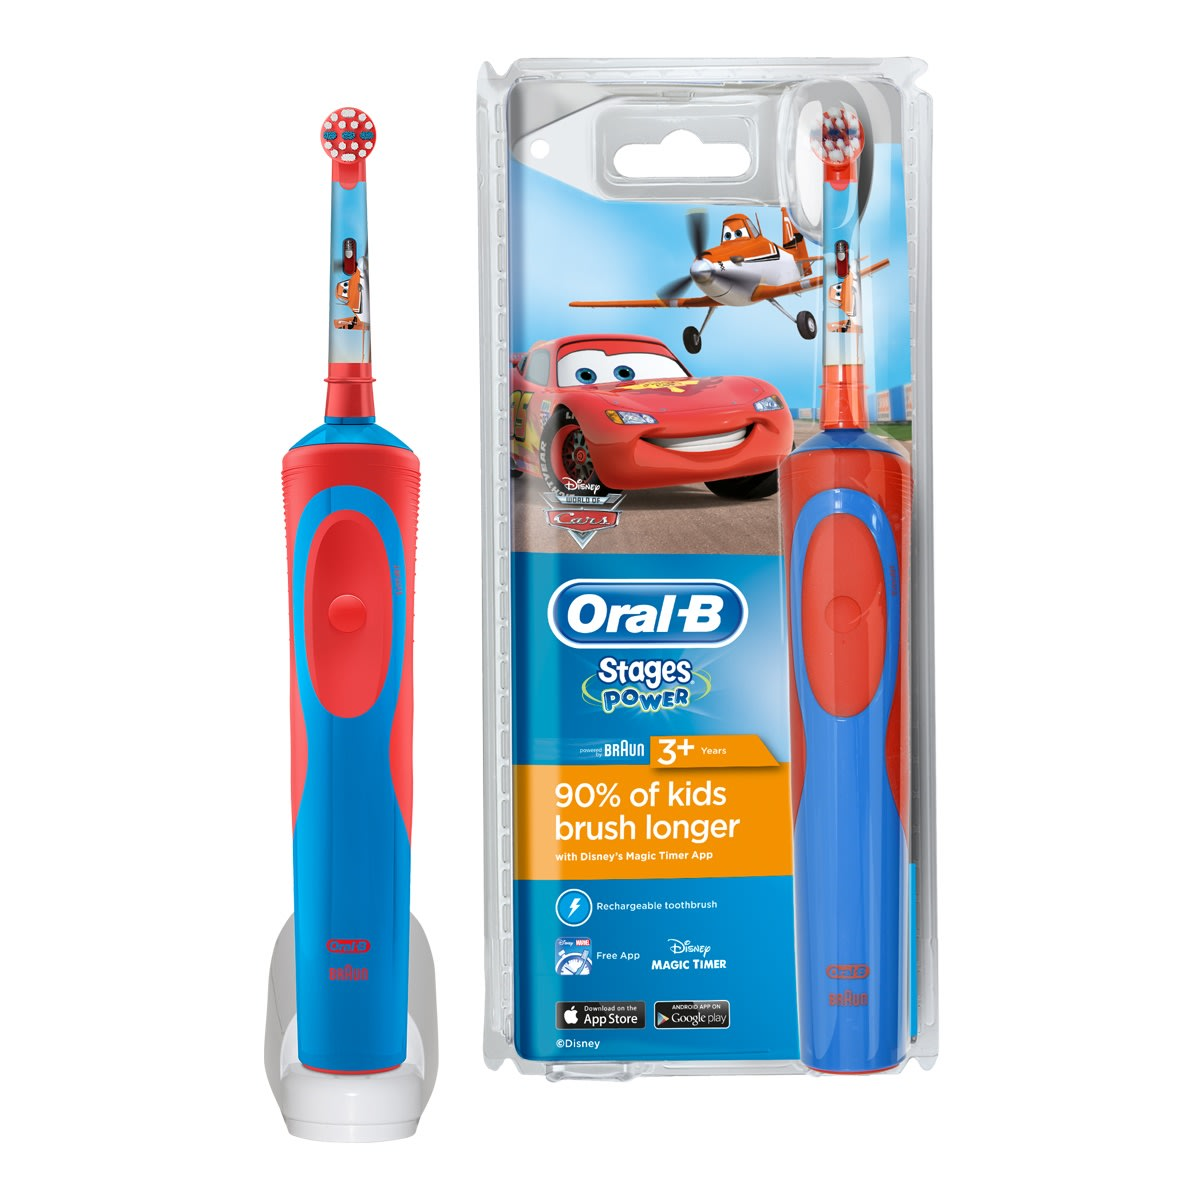 Oral-B Stages Power Cars brosse à dents électrique rechargeable enfants